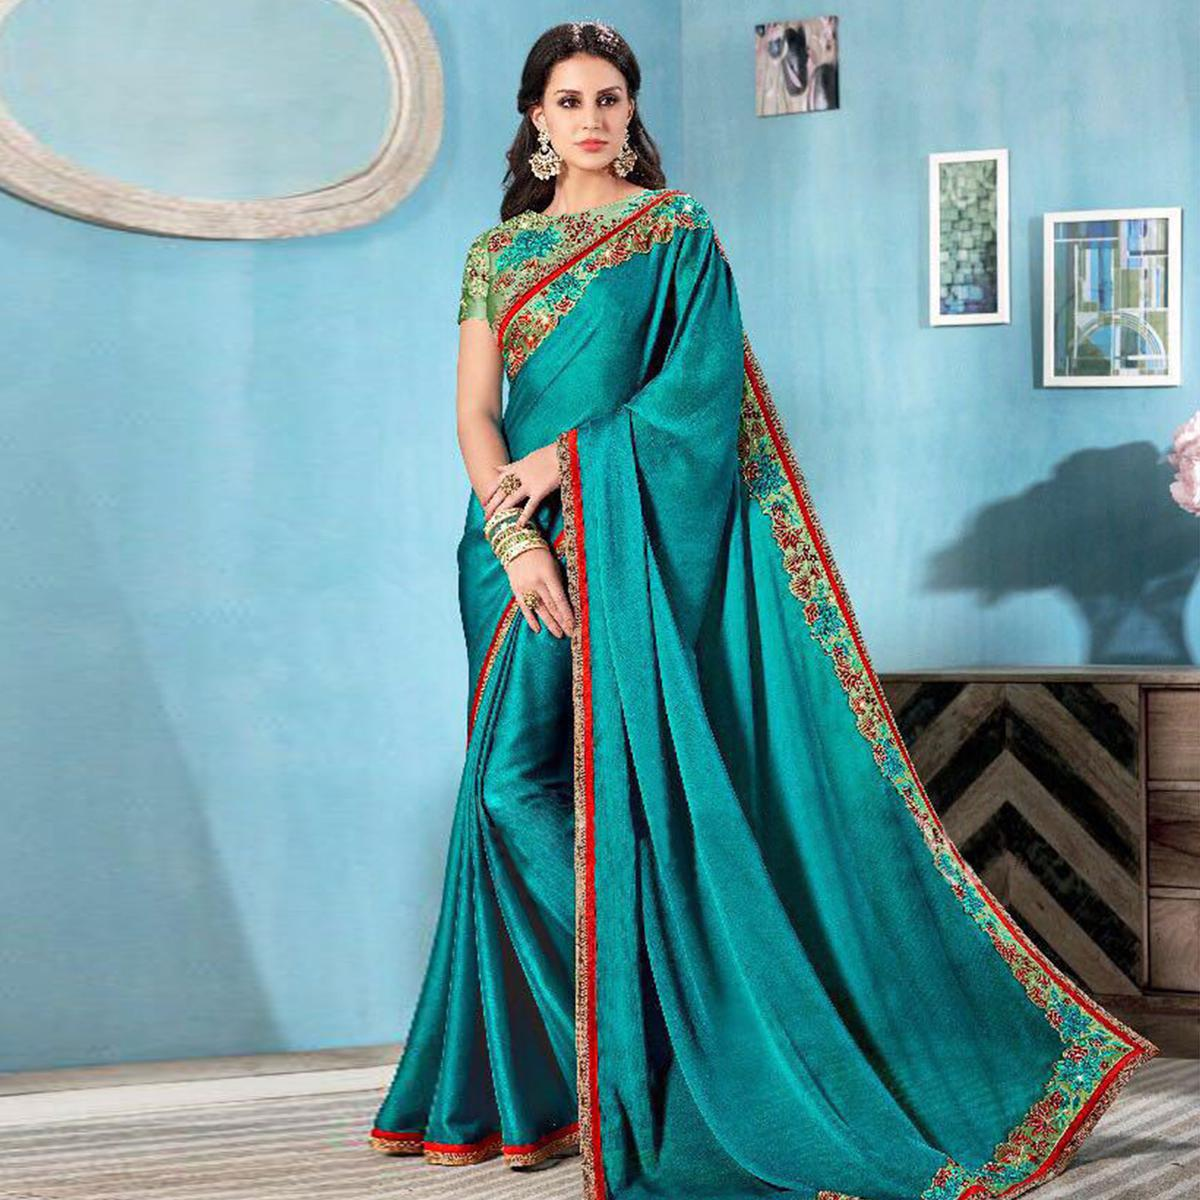 Dark Ferozi Partywear Solid Moss Chiffon Saree With Embroidered Blouse